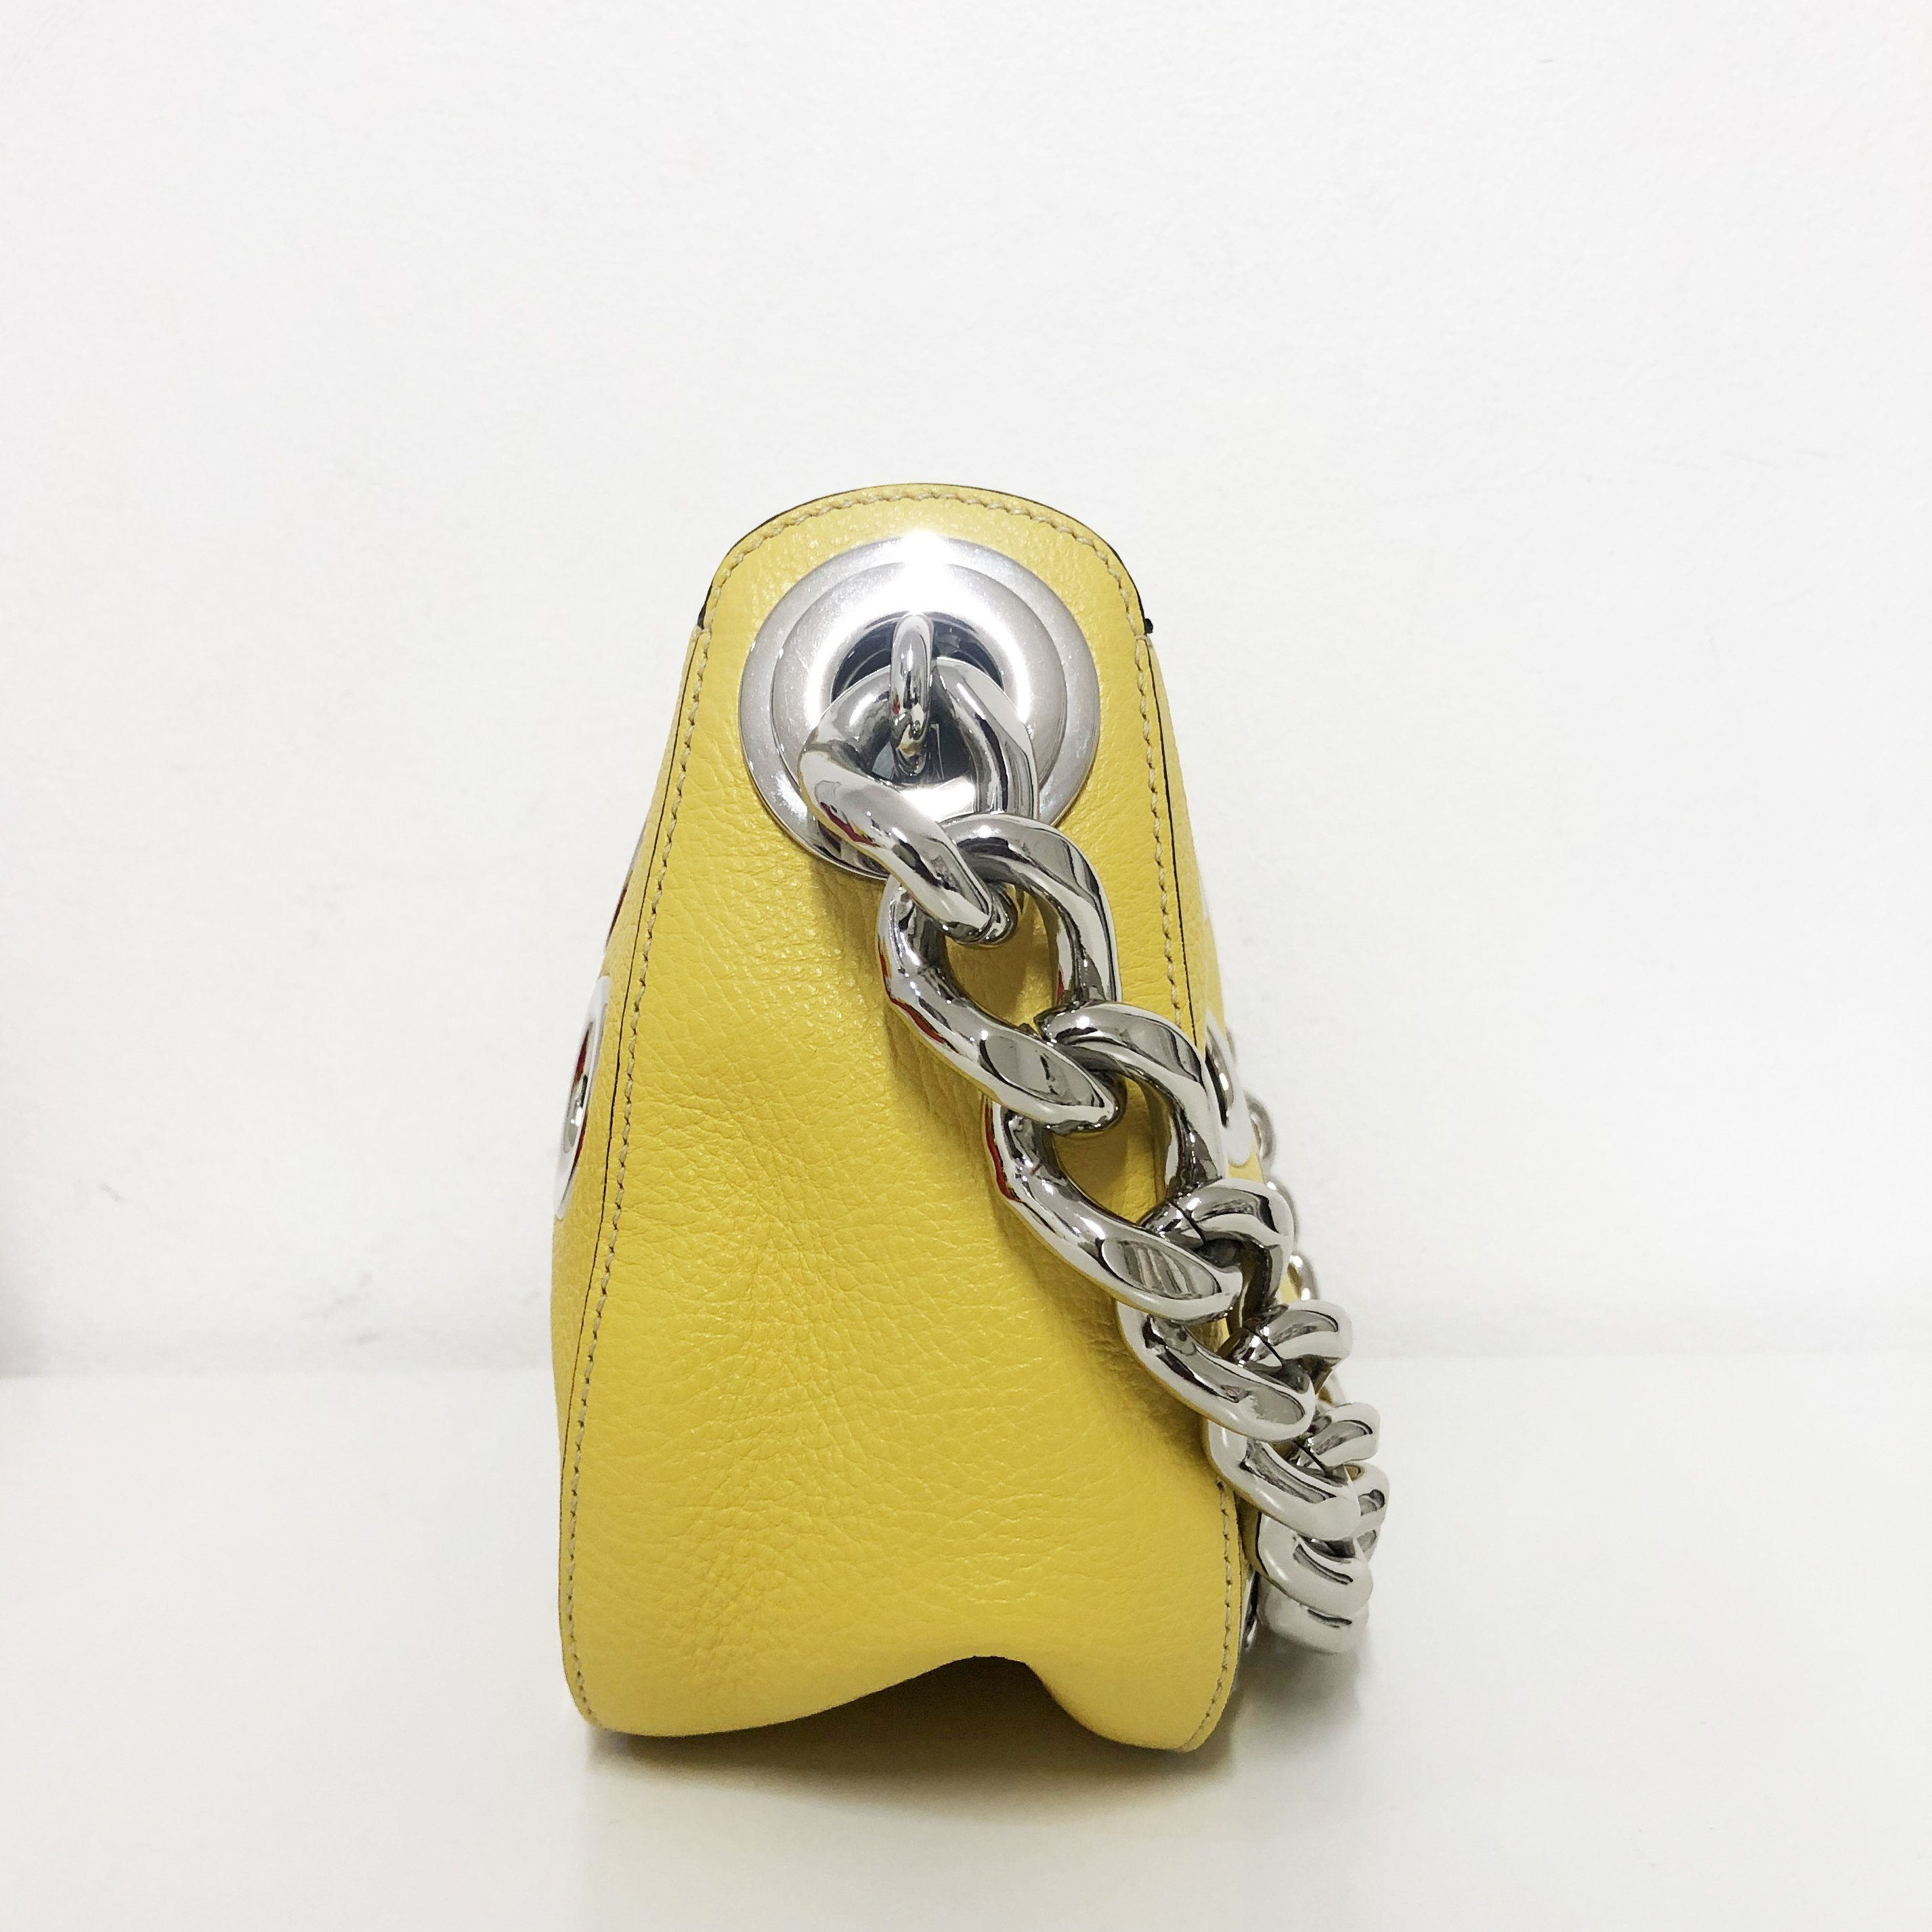 Prada Grommet Chain Hobo Vitello Daino Small Bag